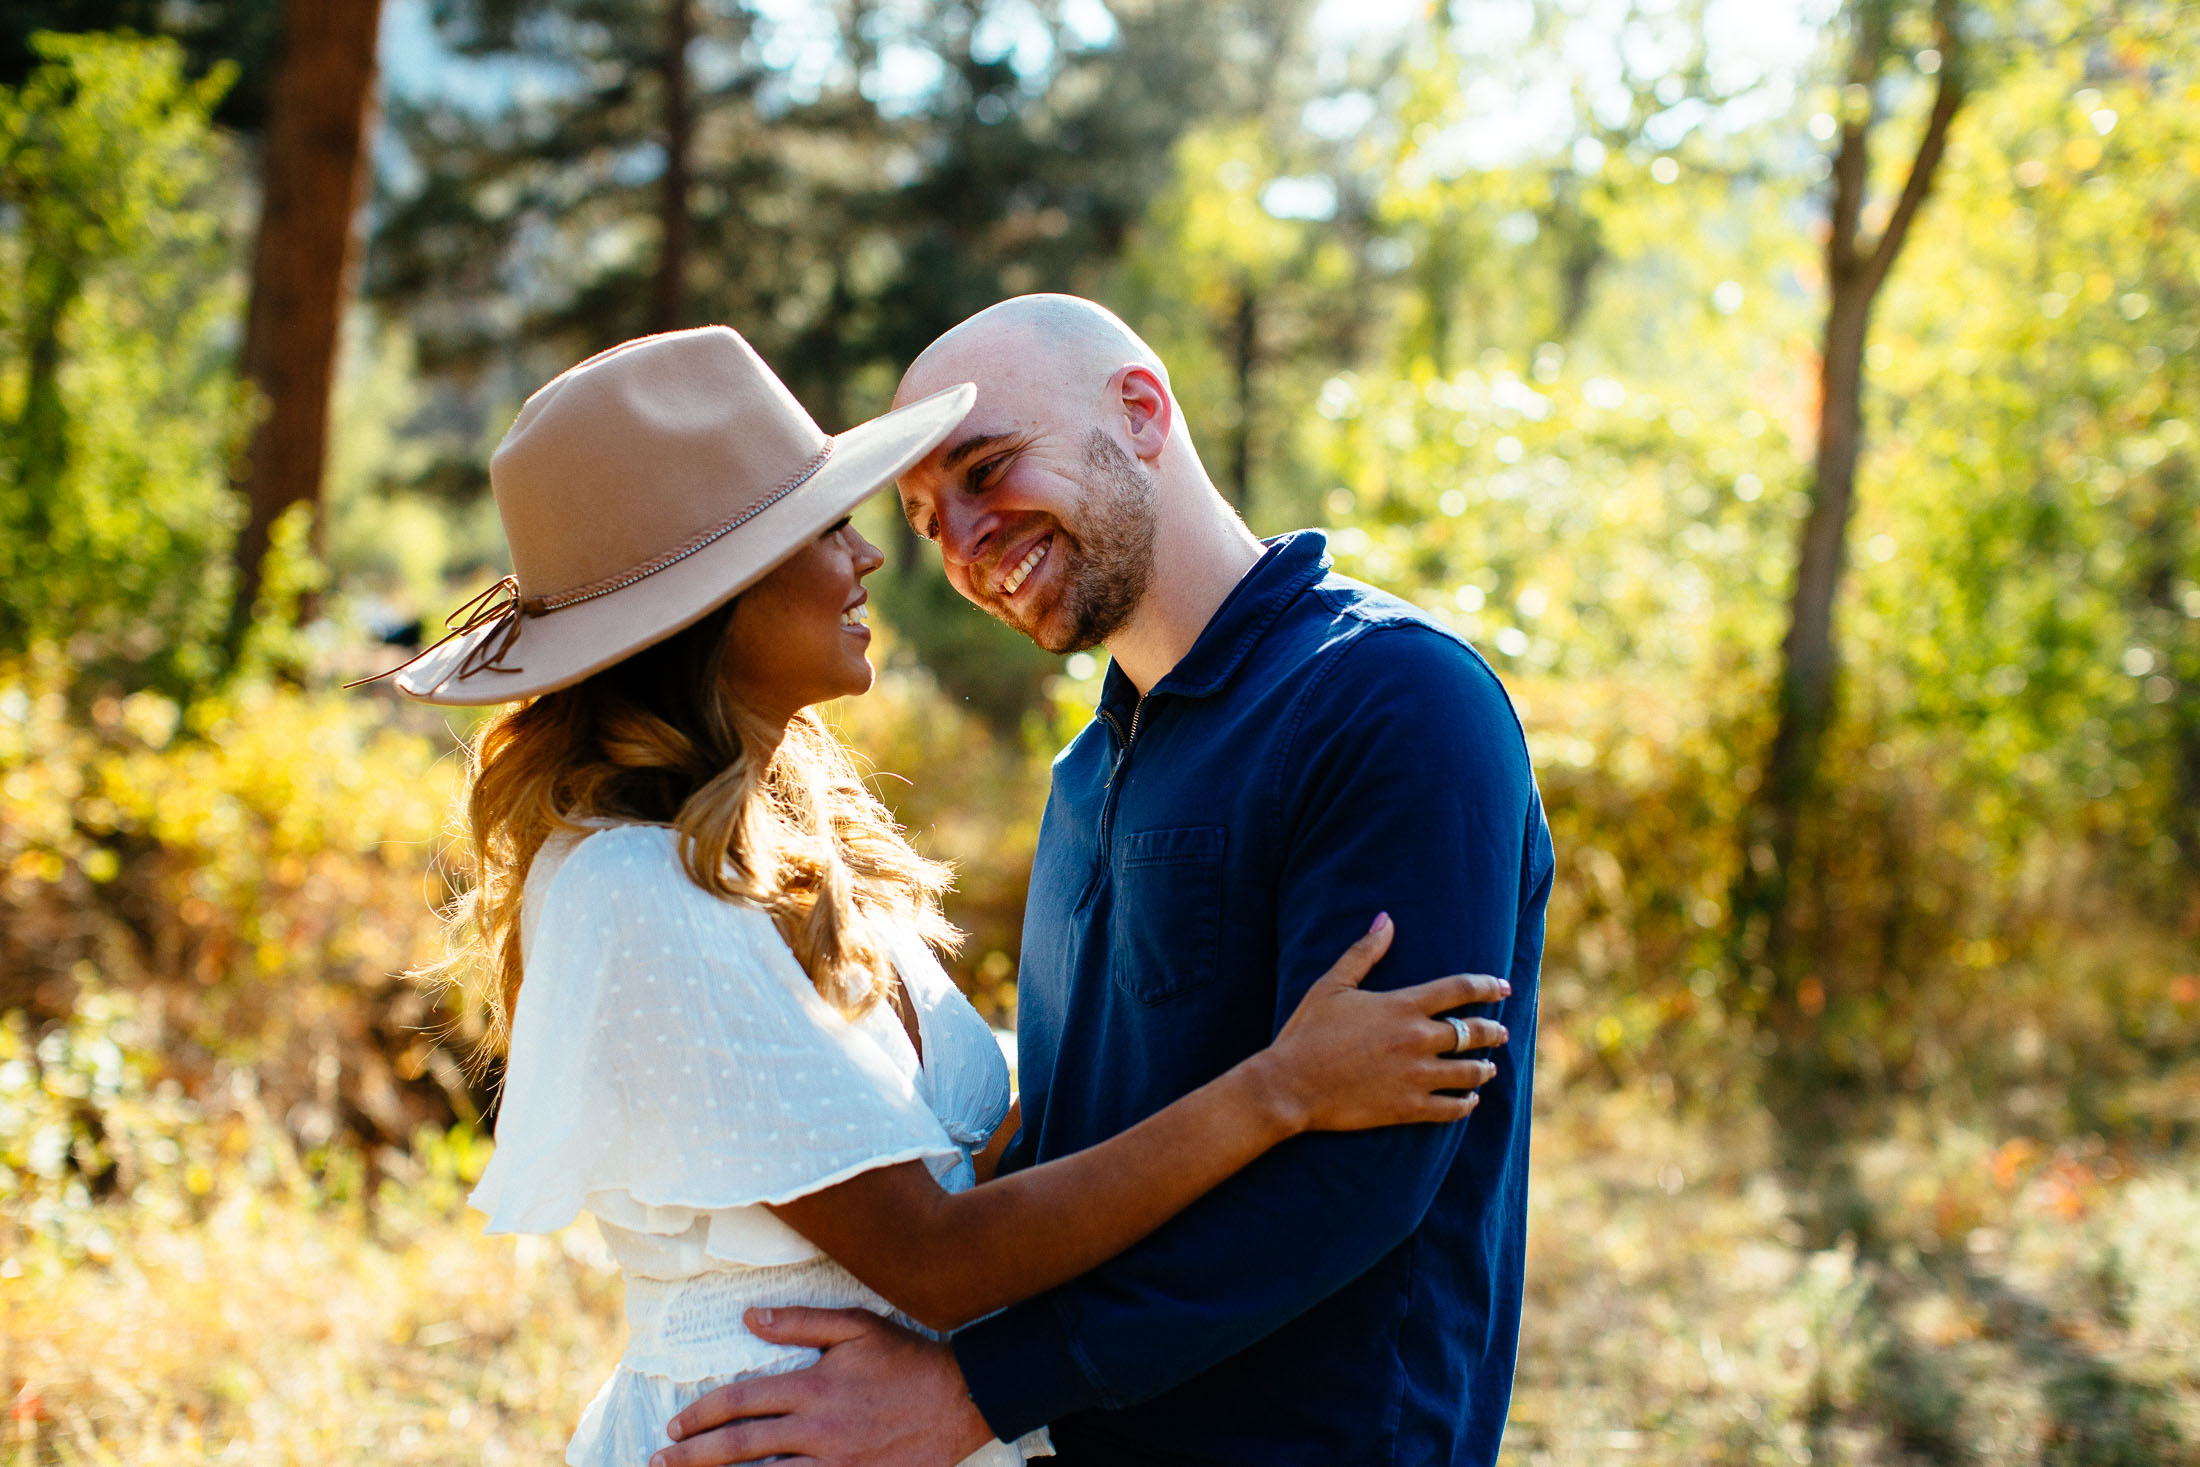 Couple embraces and kisses in a field.